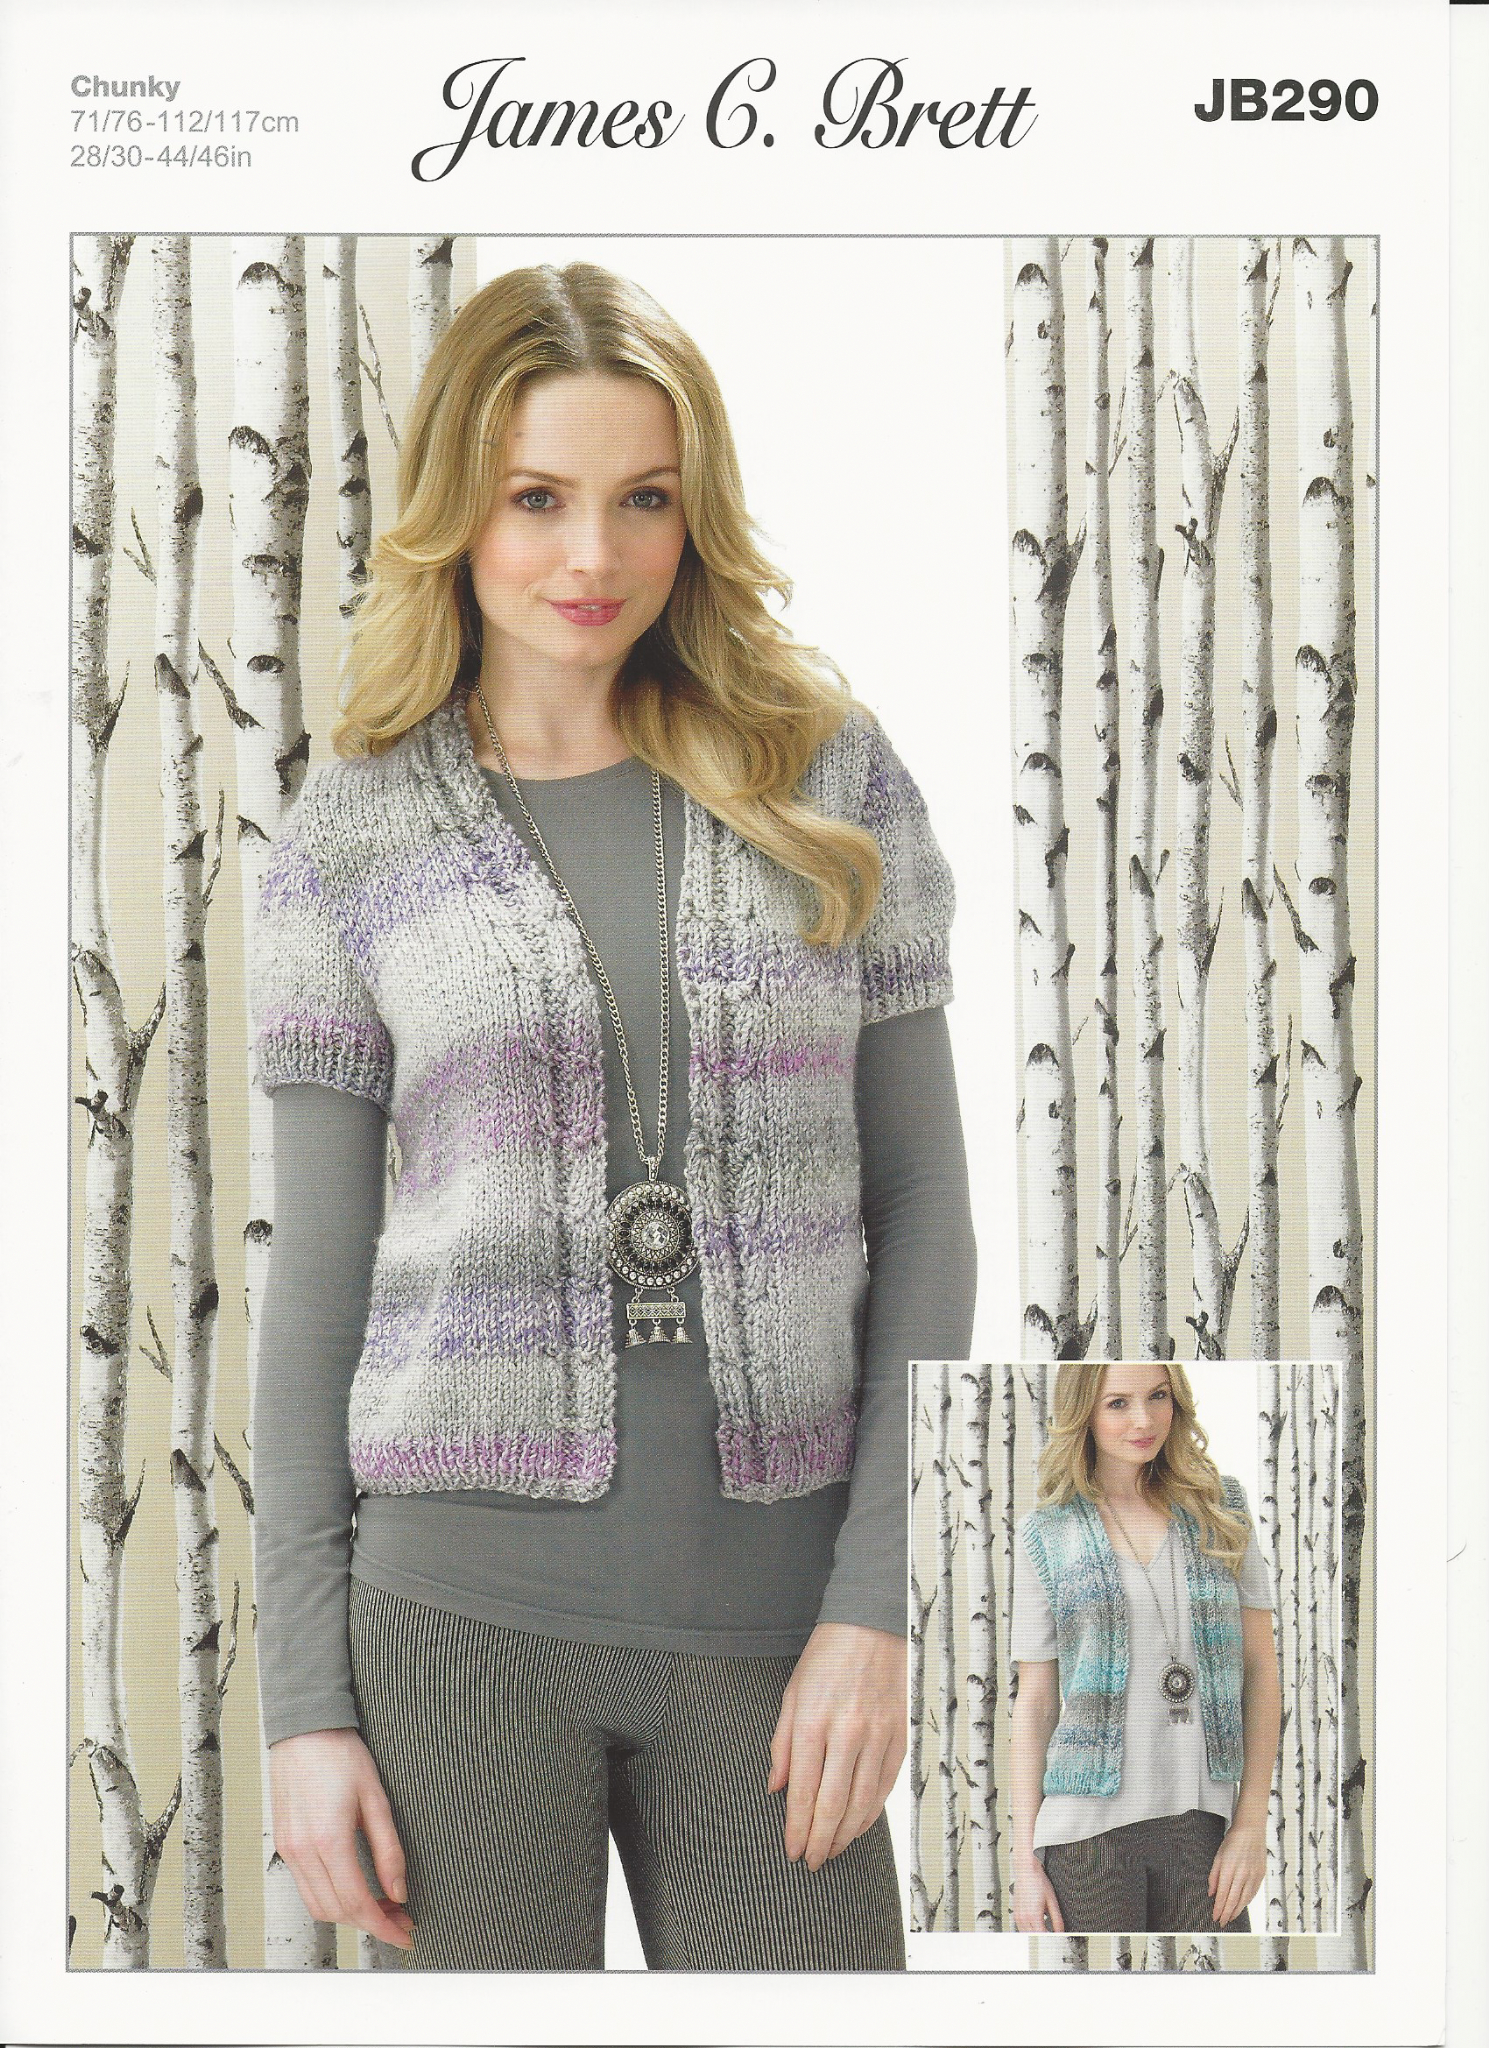 Ladies Waistcoat Knitting Pattern James C Brett Ladies Waistcoats Knitting Pattern In Marble Chunky Jb290